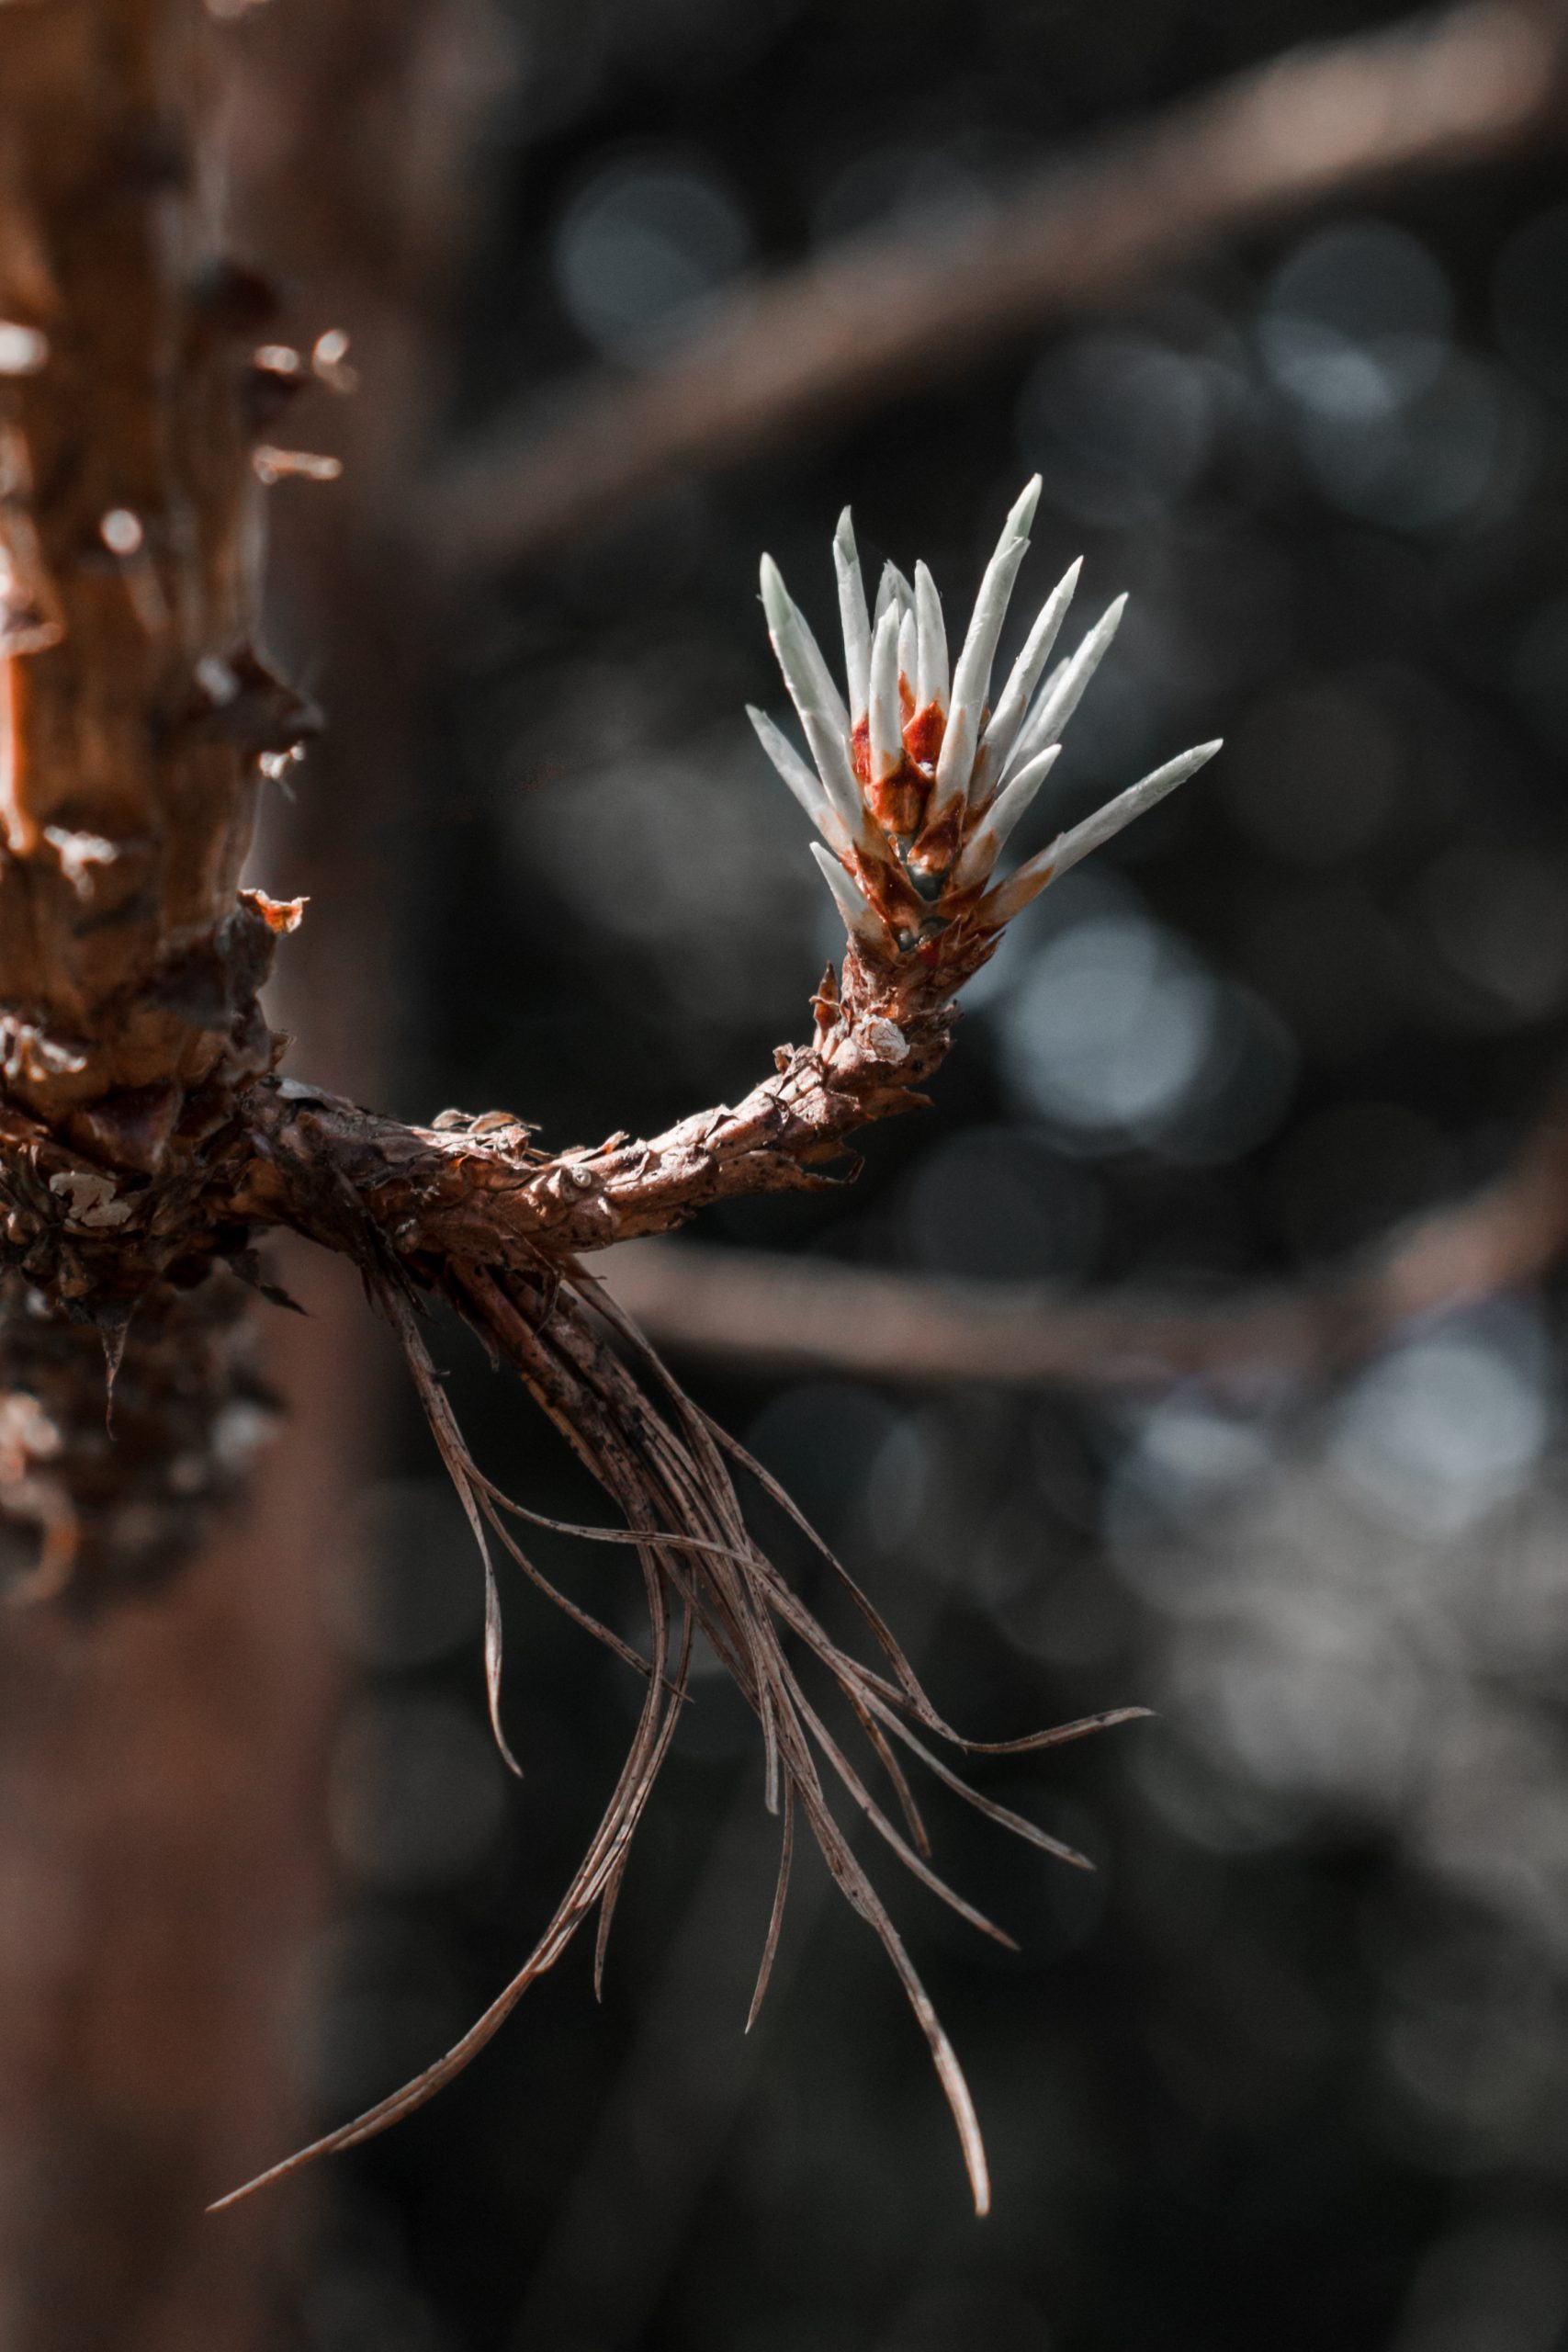 Flower of a pine tree